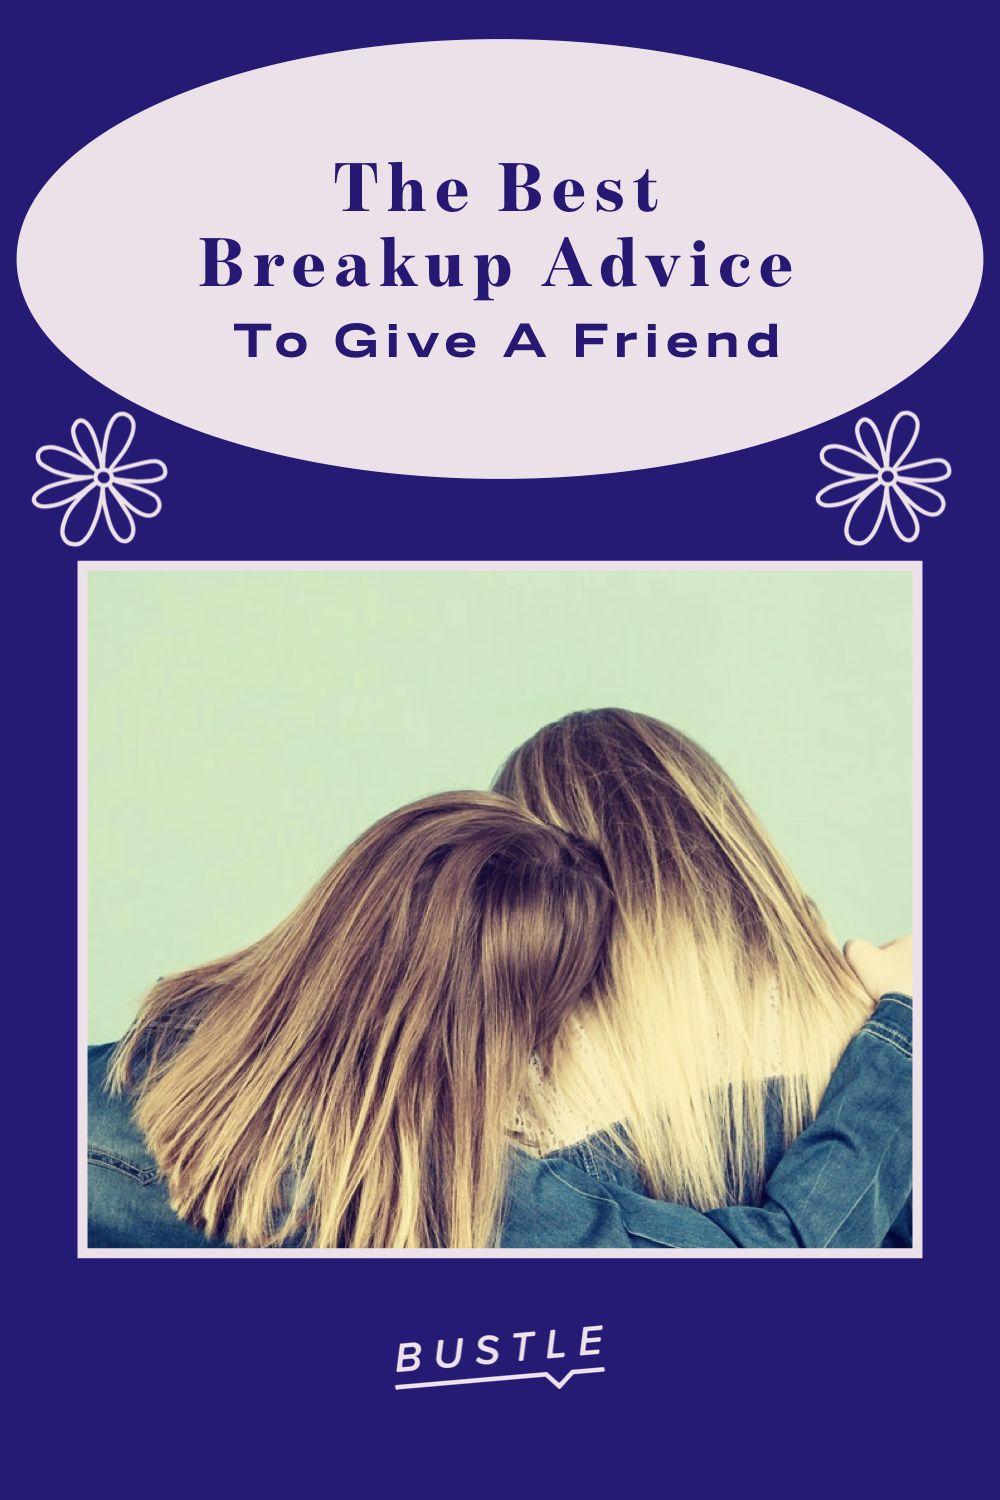 The Best Breakup Advice To Give A Friend